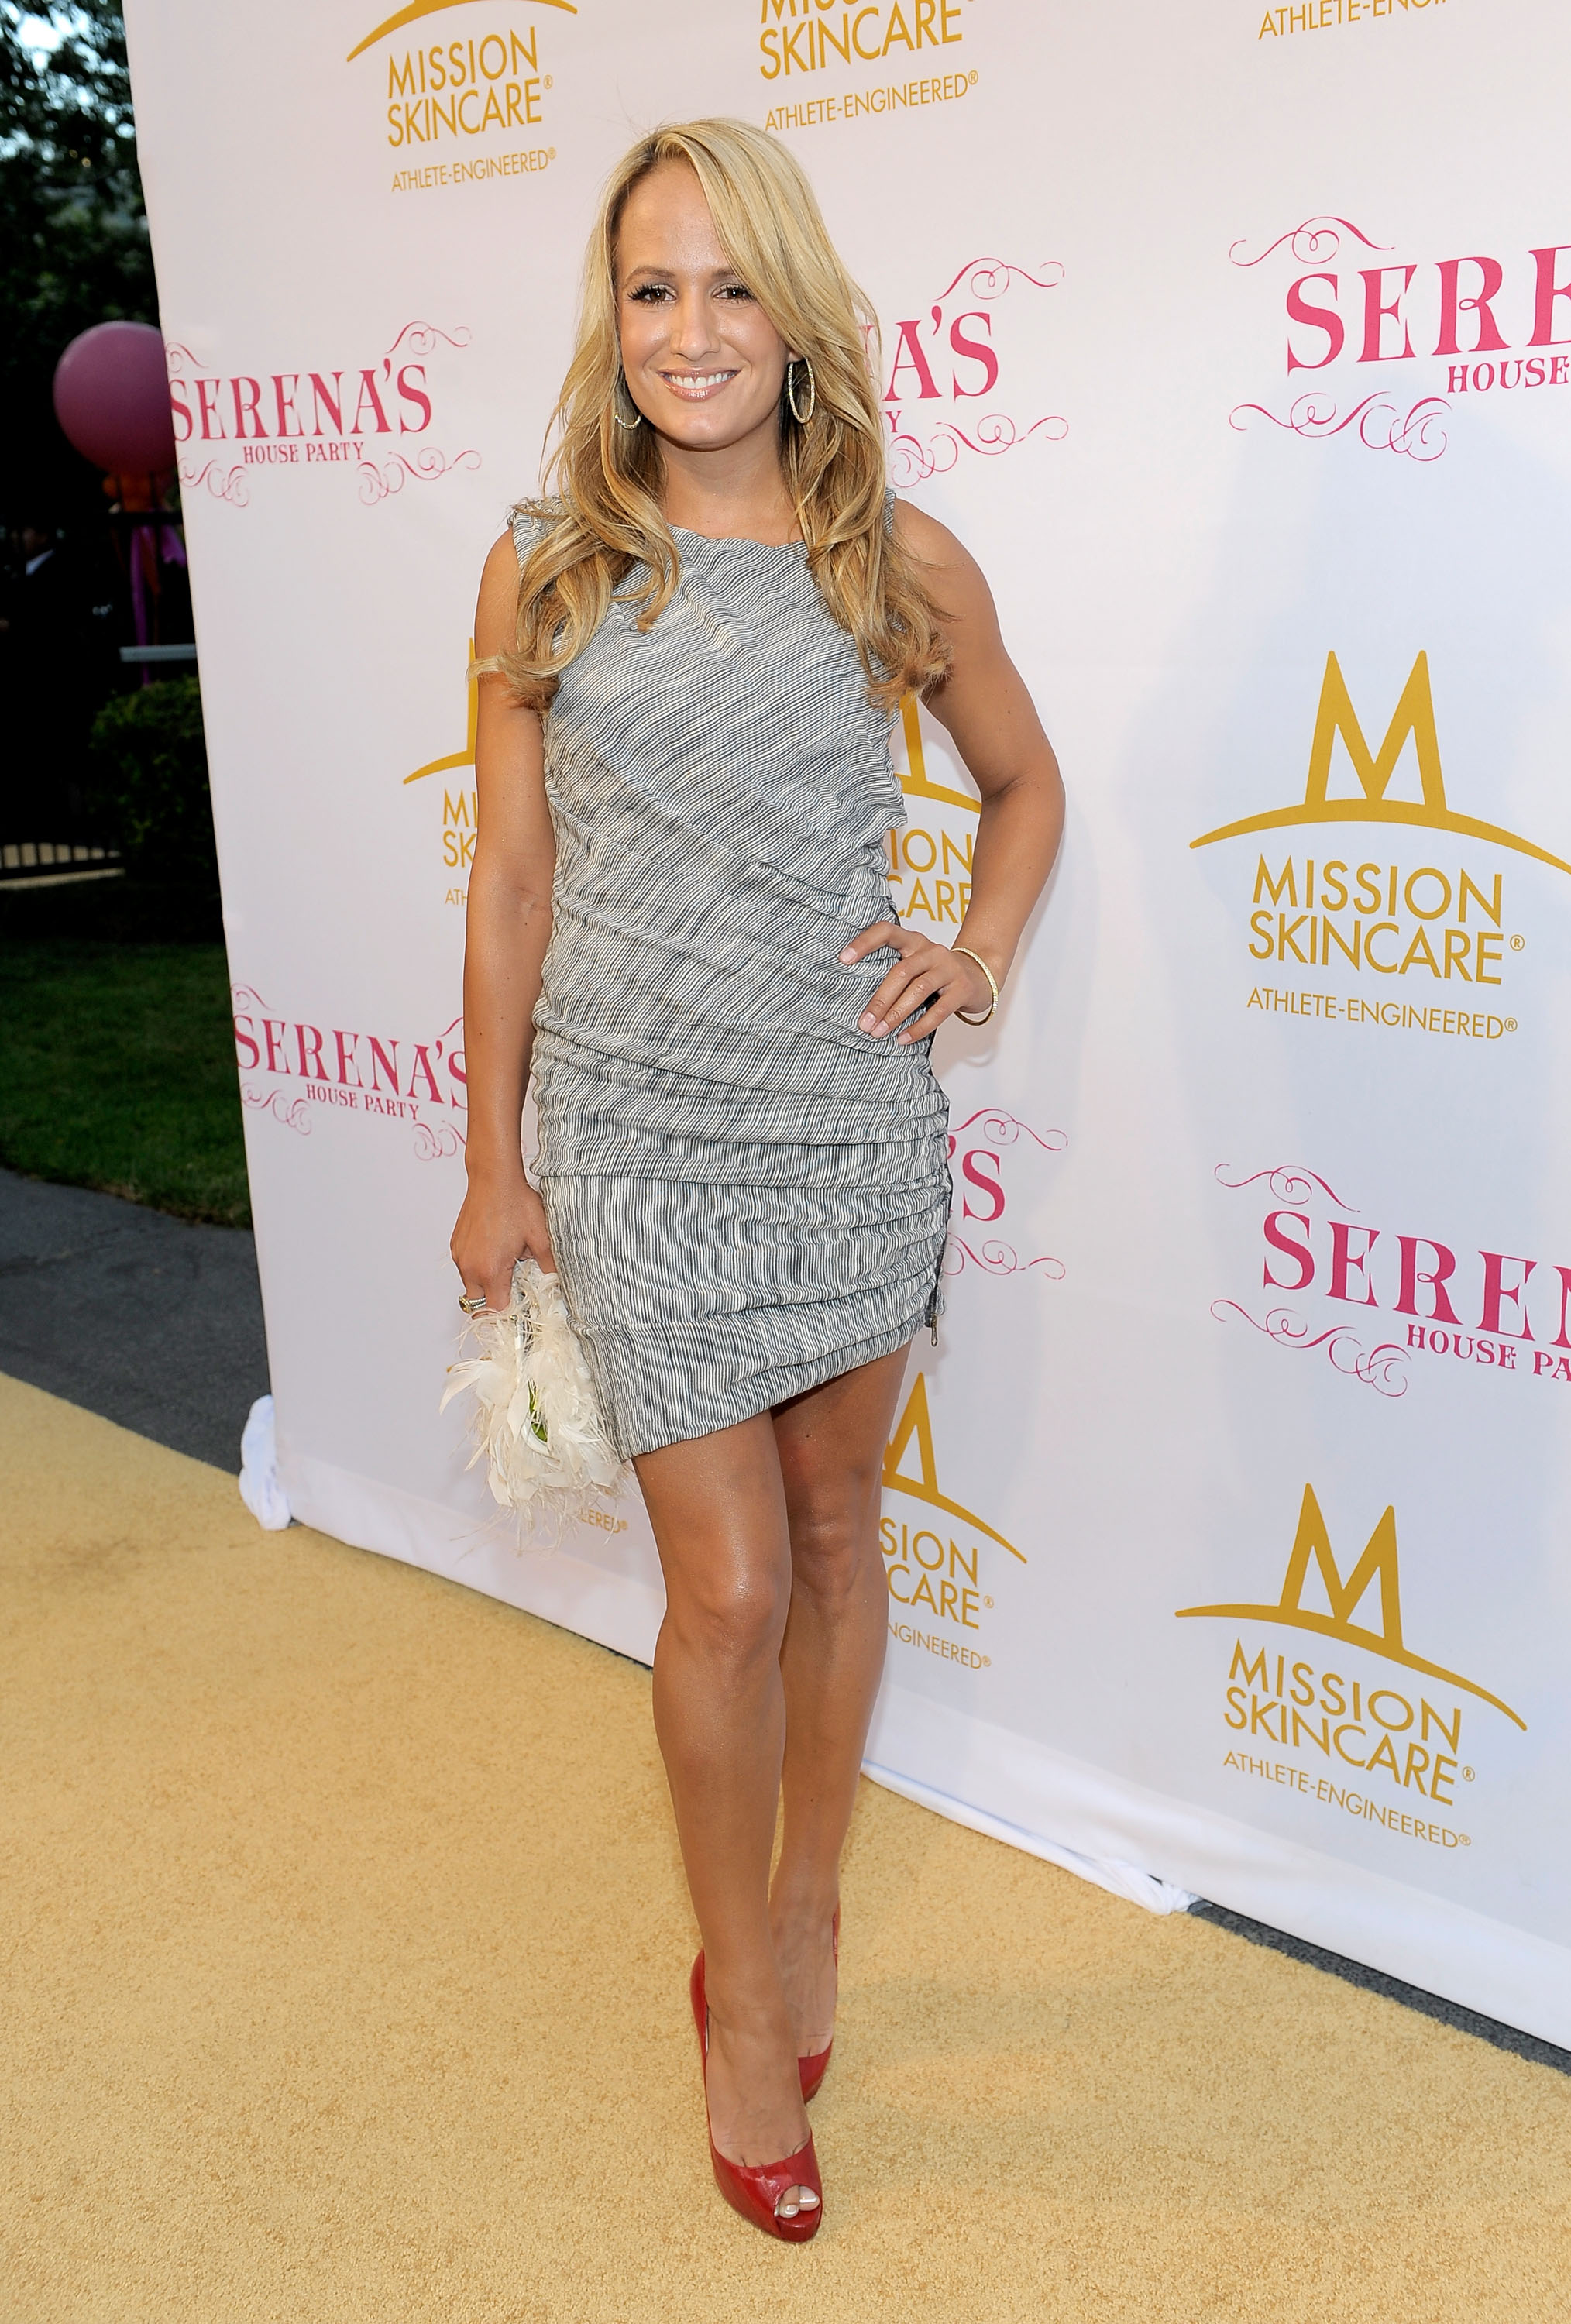 BEL AIR, CA - JULY 12:  Sportscaster Jenn Brown attends professional tennis player Serena Williams' Pre-ESPYs House Party held at a private residence on July 12, 2010 in Bel Air, California.  (Photo by Charley Gallay/Getty Images for SW)